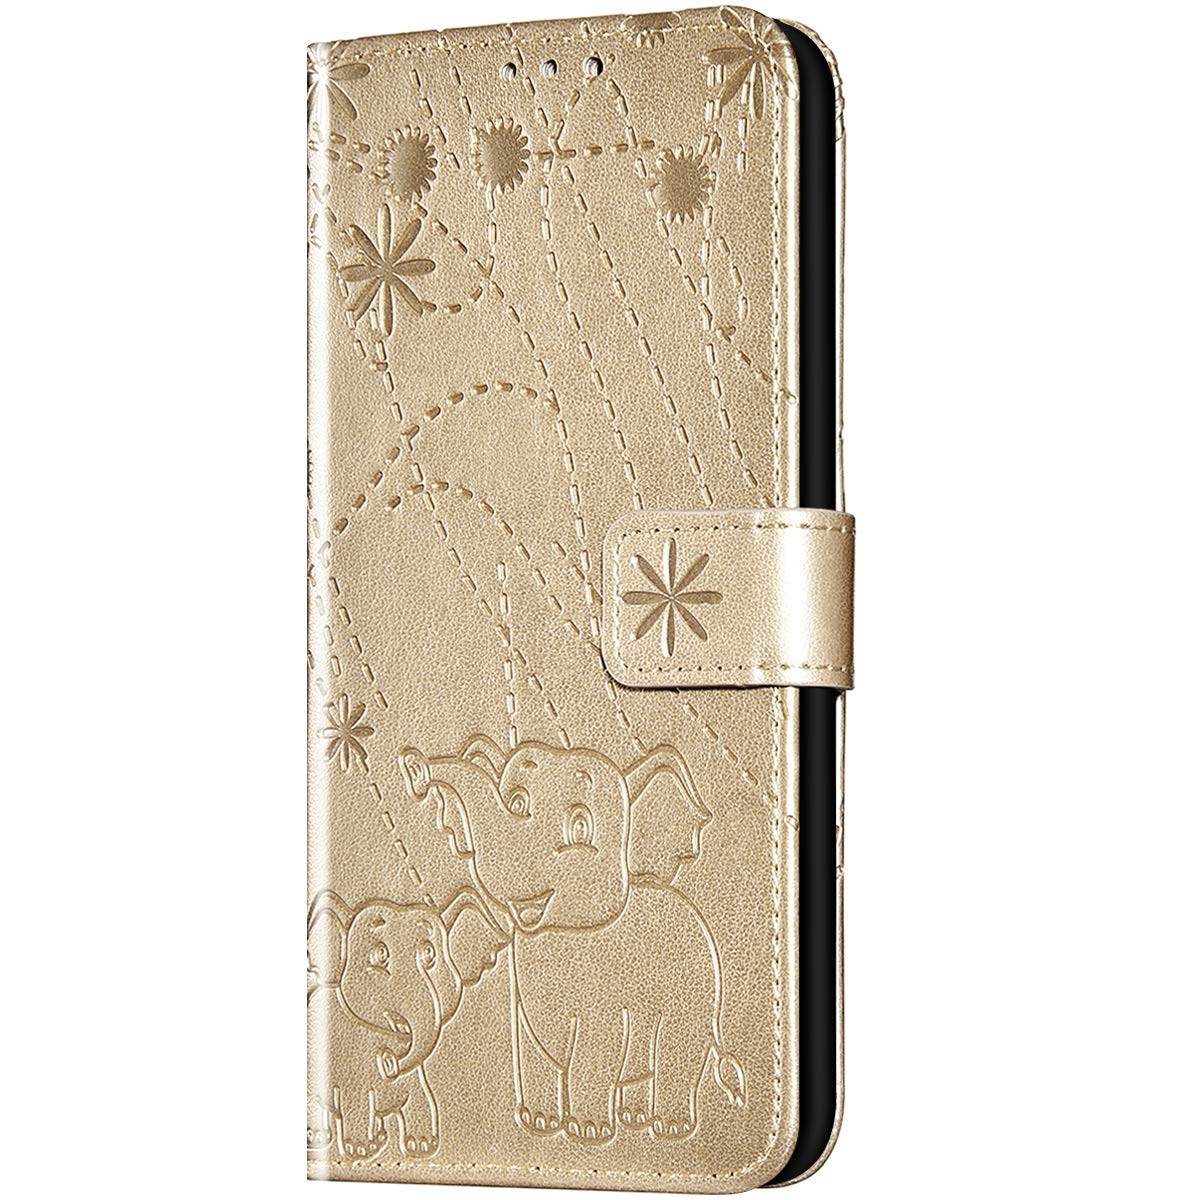 Case for iPhone XR Flip Case Premium Soft PU Leather Embossed with Folding Stand, Card Slots, Wristlet and Magnetic Closure Protective Cover for iPhone XR,Gold by ikasus